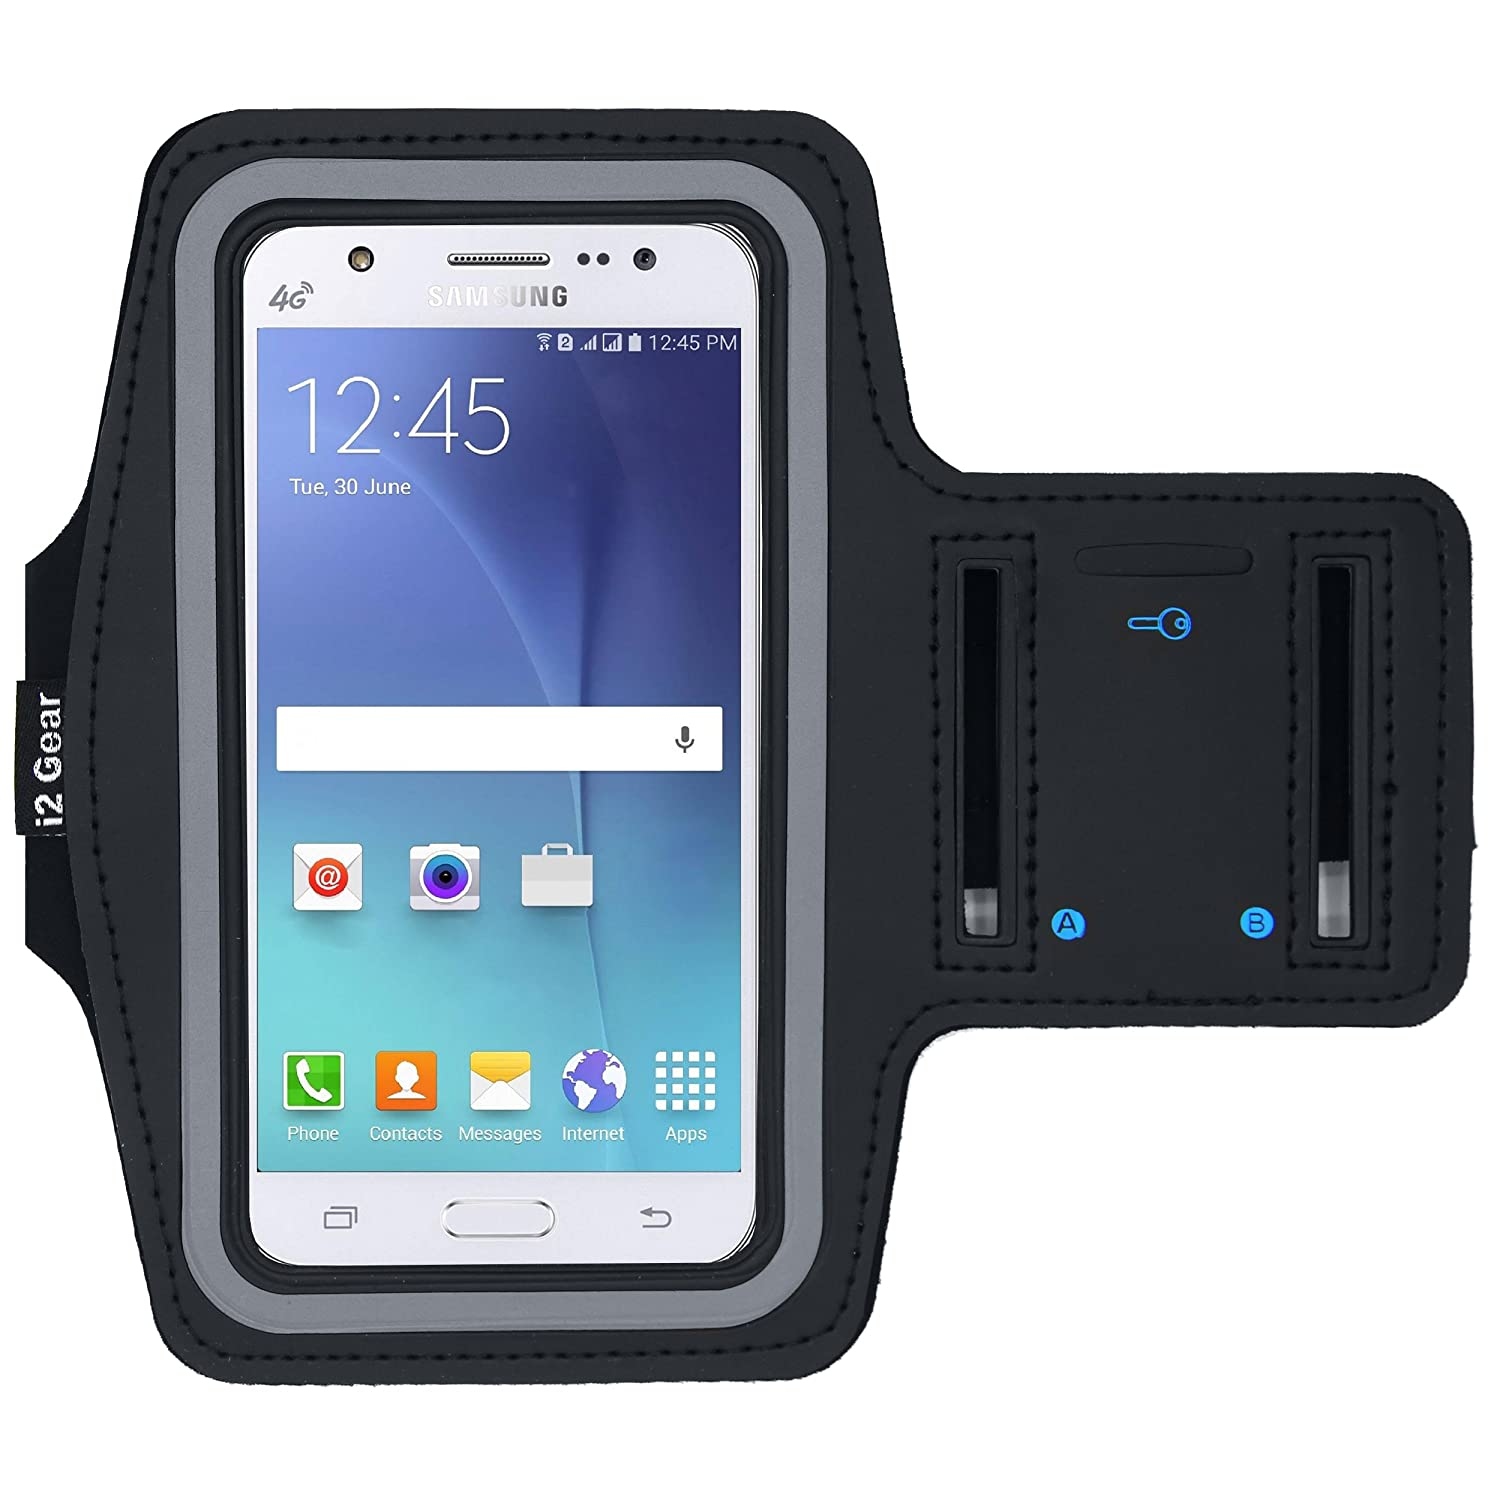 new style 5a019 17b5b i2 Gear Armband Cell Phone Holder for Running - Arm Band Workout Phone  Holder for Samsung Galaxy J3 Achieve, Emerge, Pro, Eclipse, V, Prime and  Luna ...